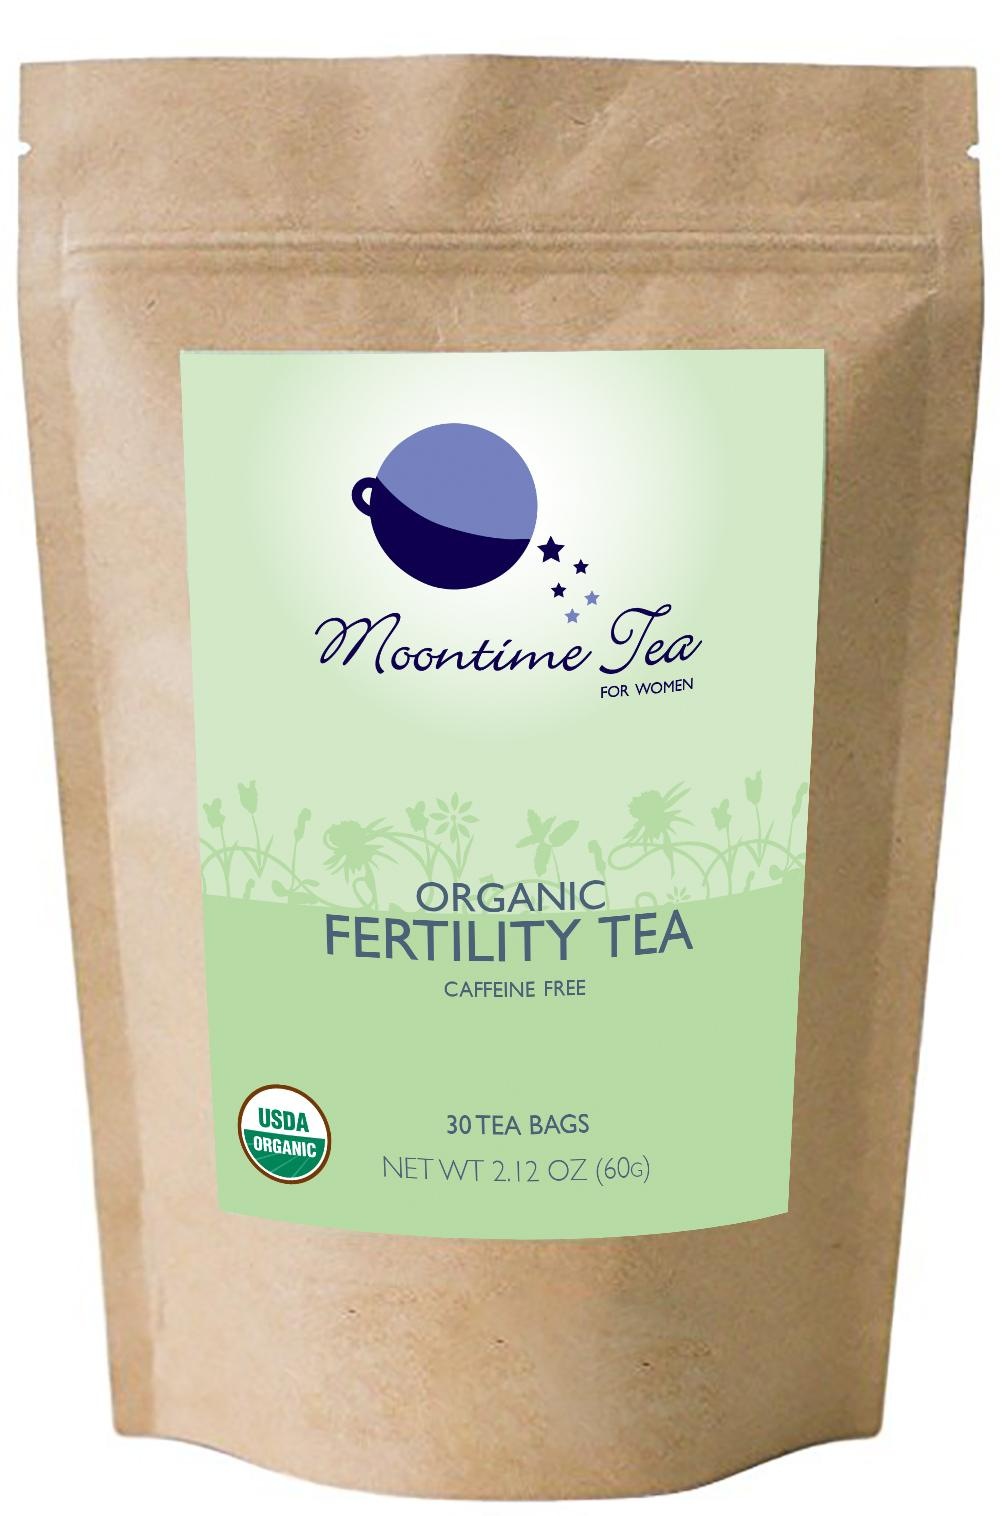 Organic Fertility Tea, 30 Teabags, 2 12 oz